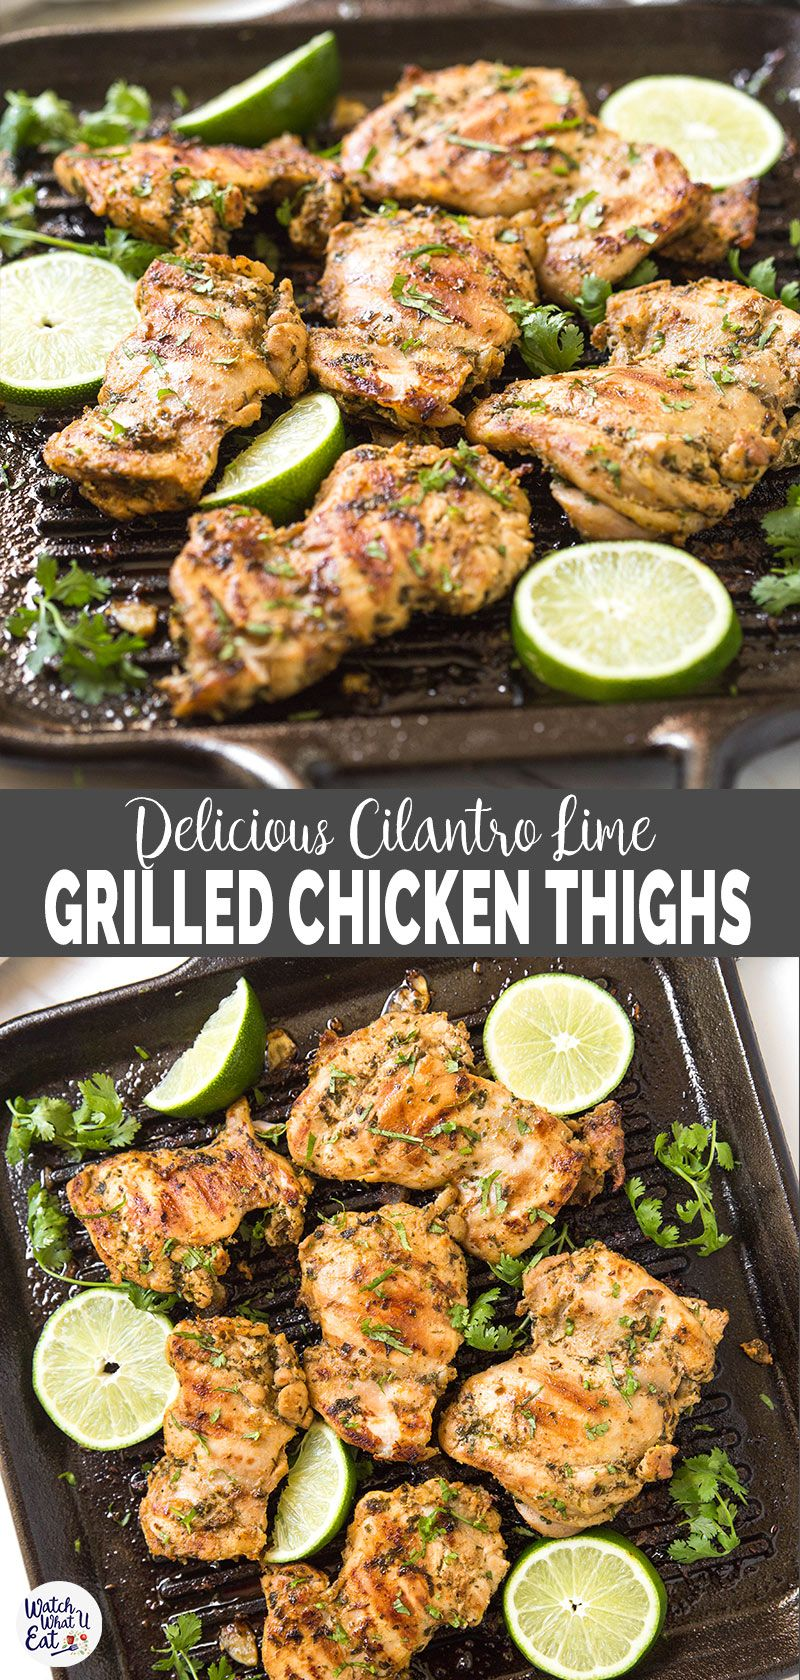 Easy Cilantro Lime Grilled Chicken Thighs images